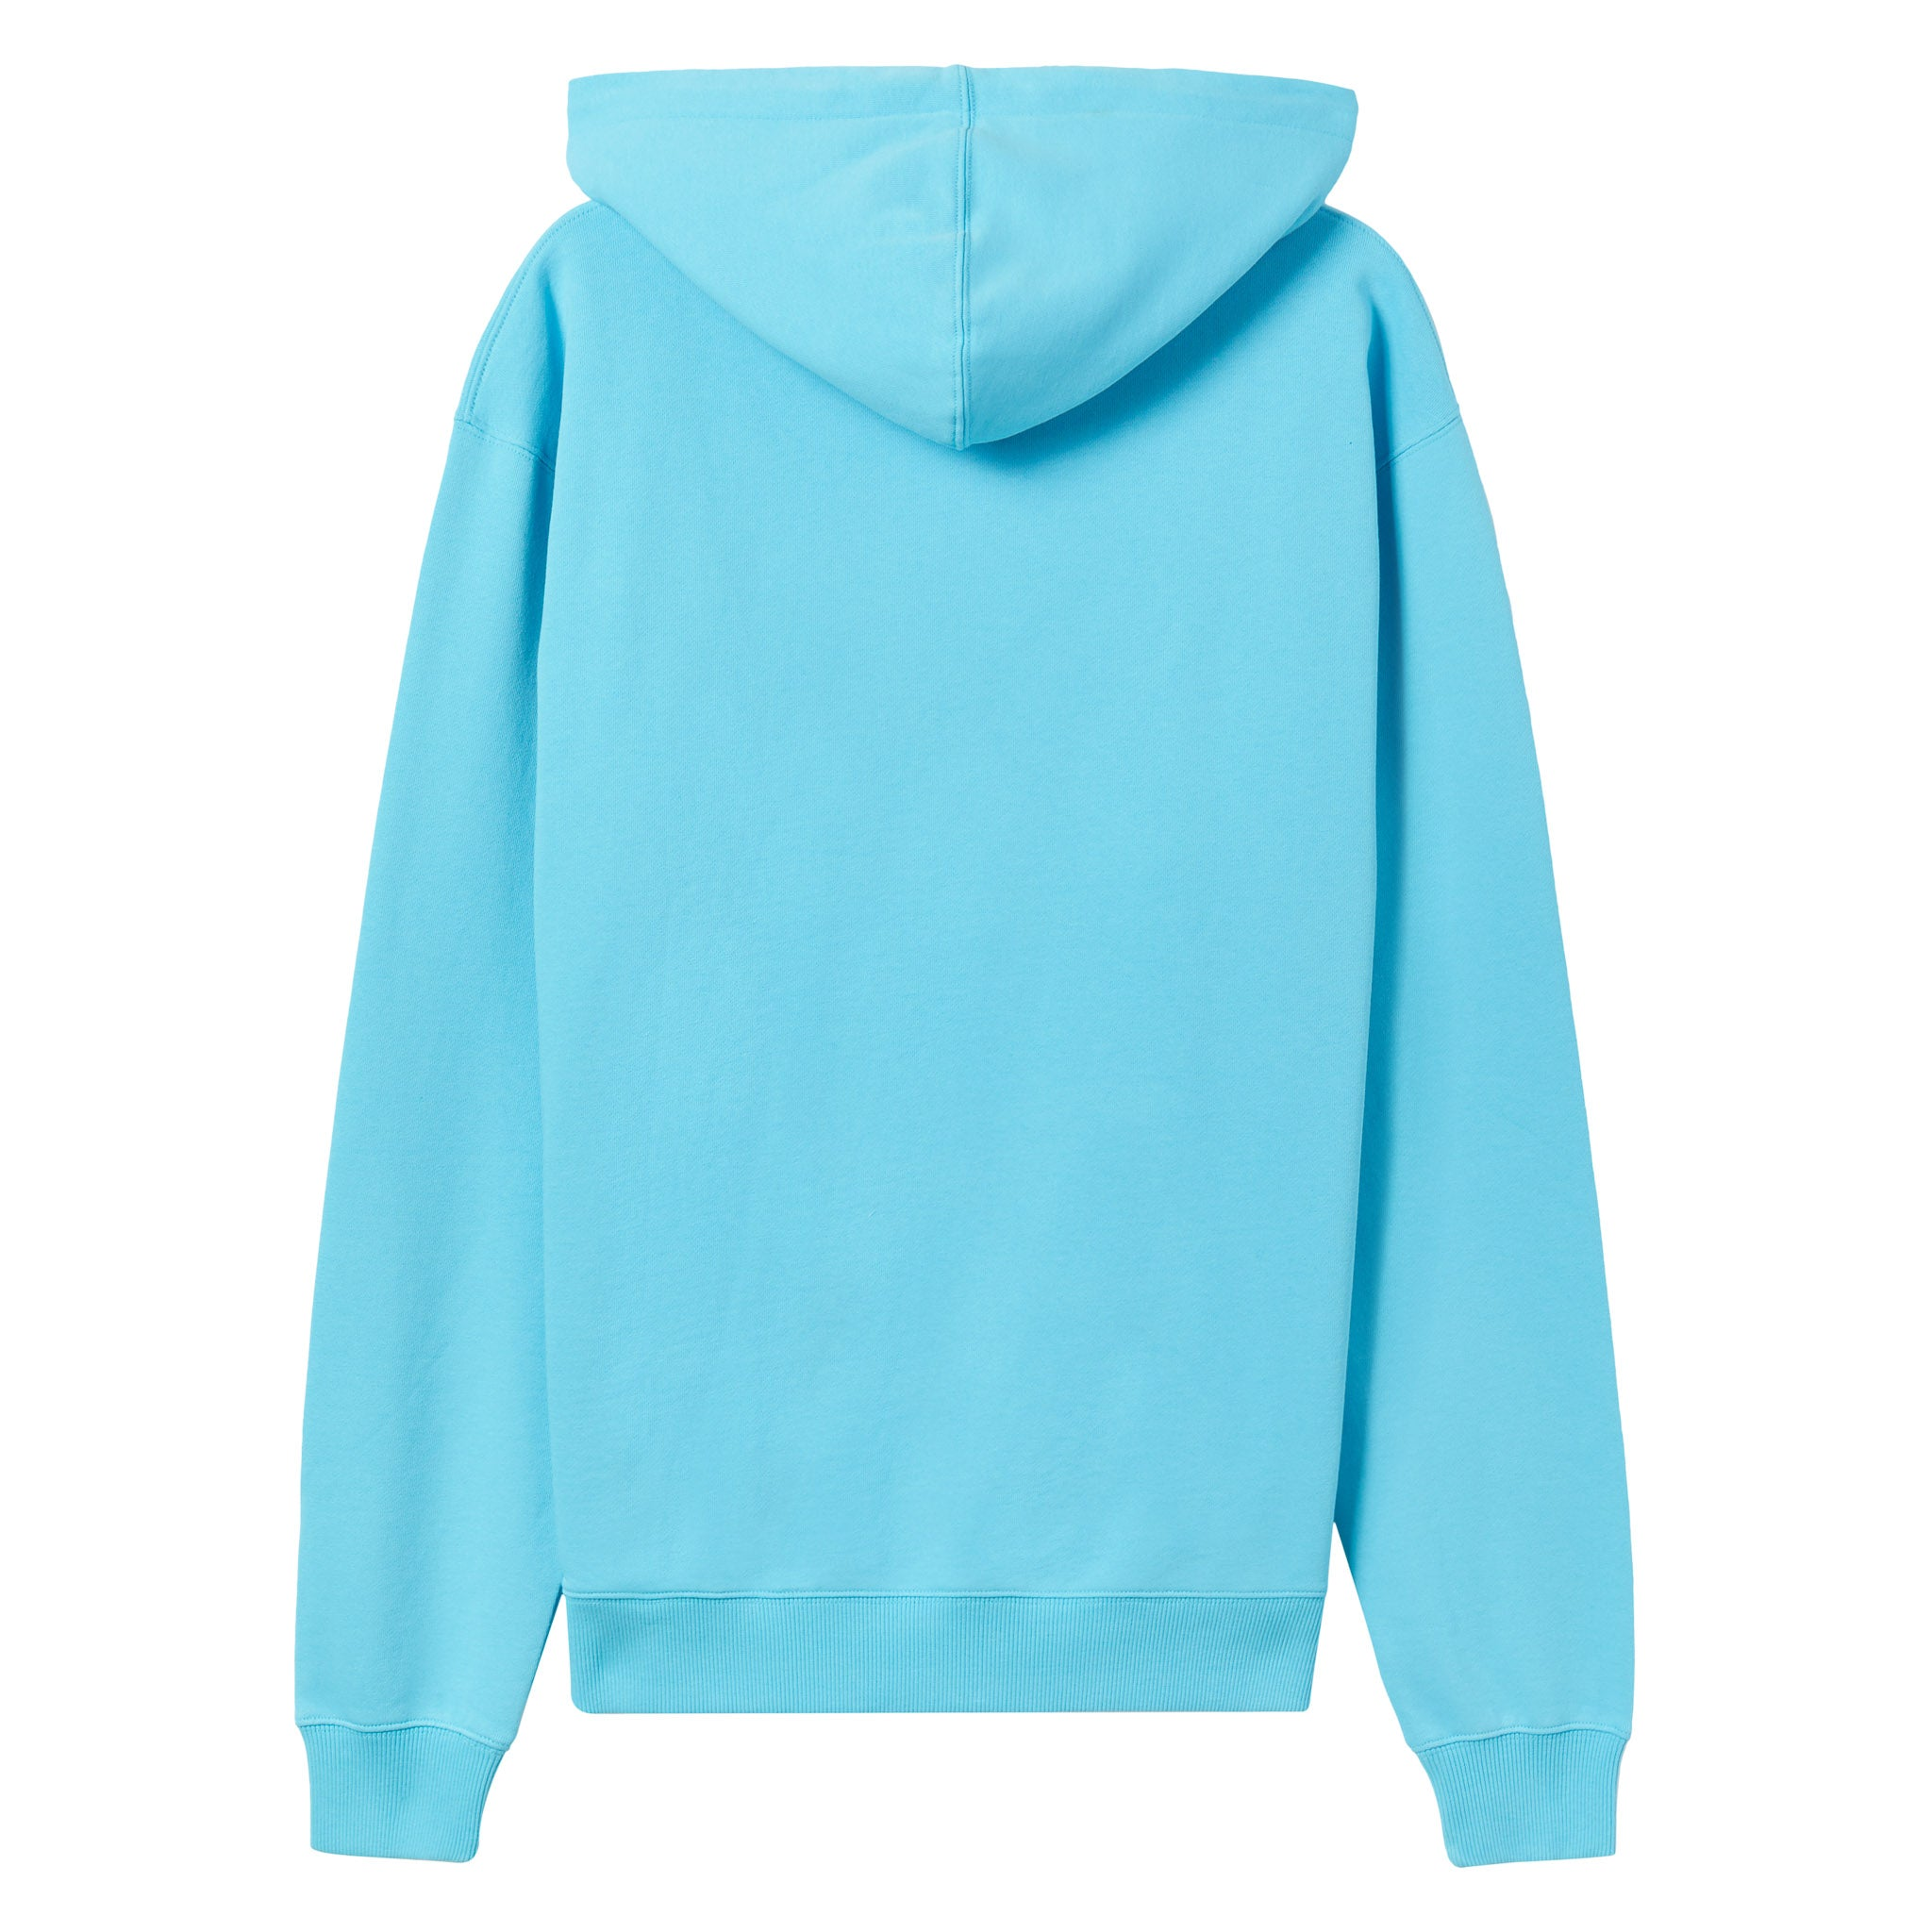 Gym logo hoodie - Pastel blue with Chalk White print